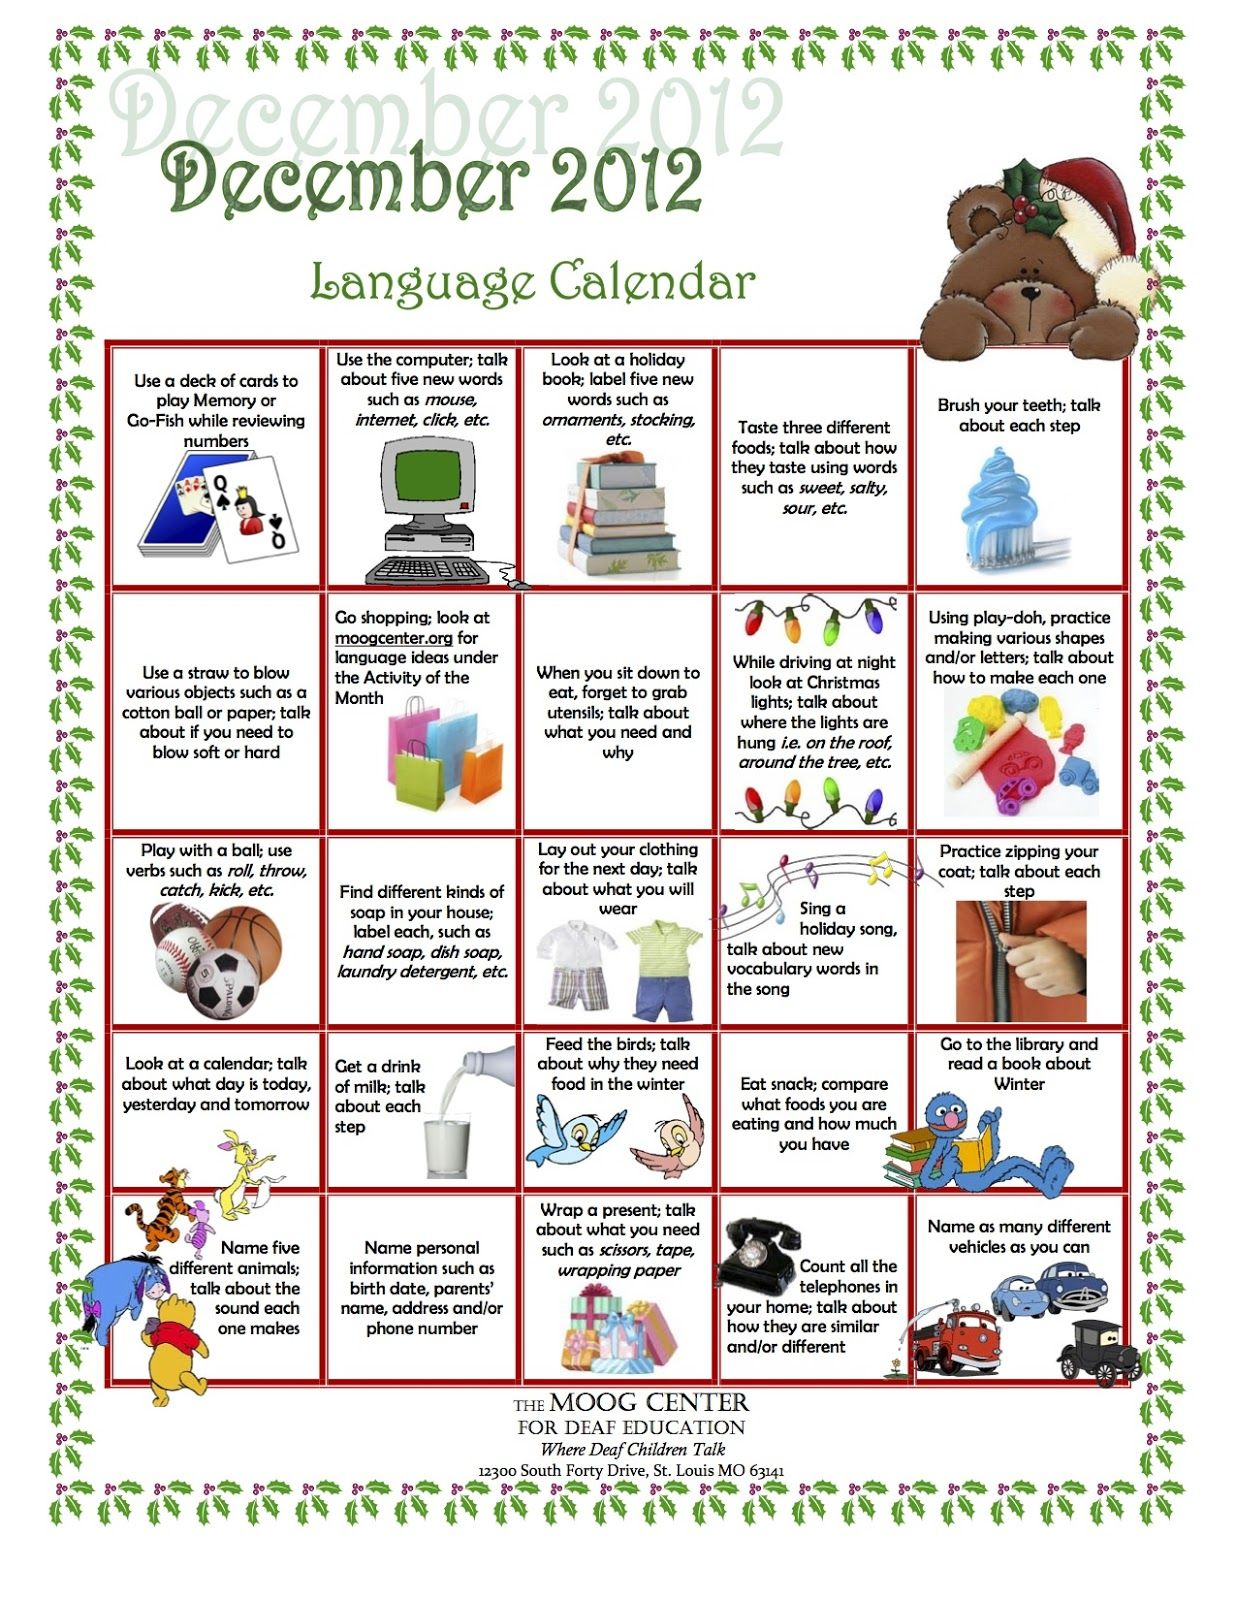 Hearsaylw Listening And Spoken Language Calendar For December